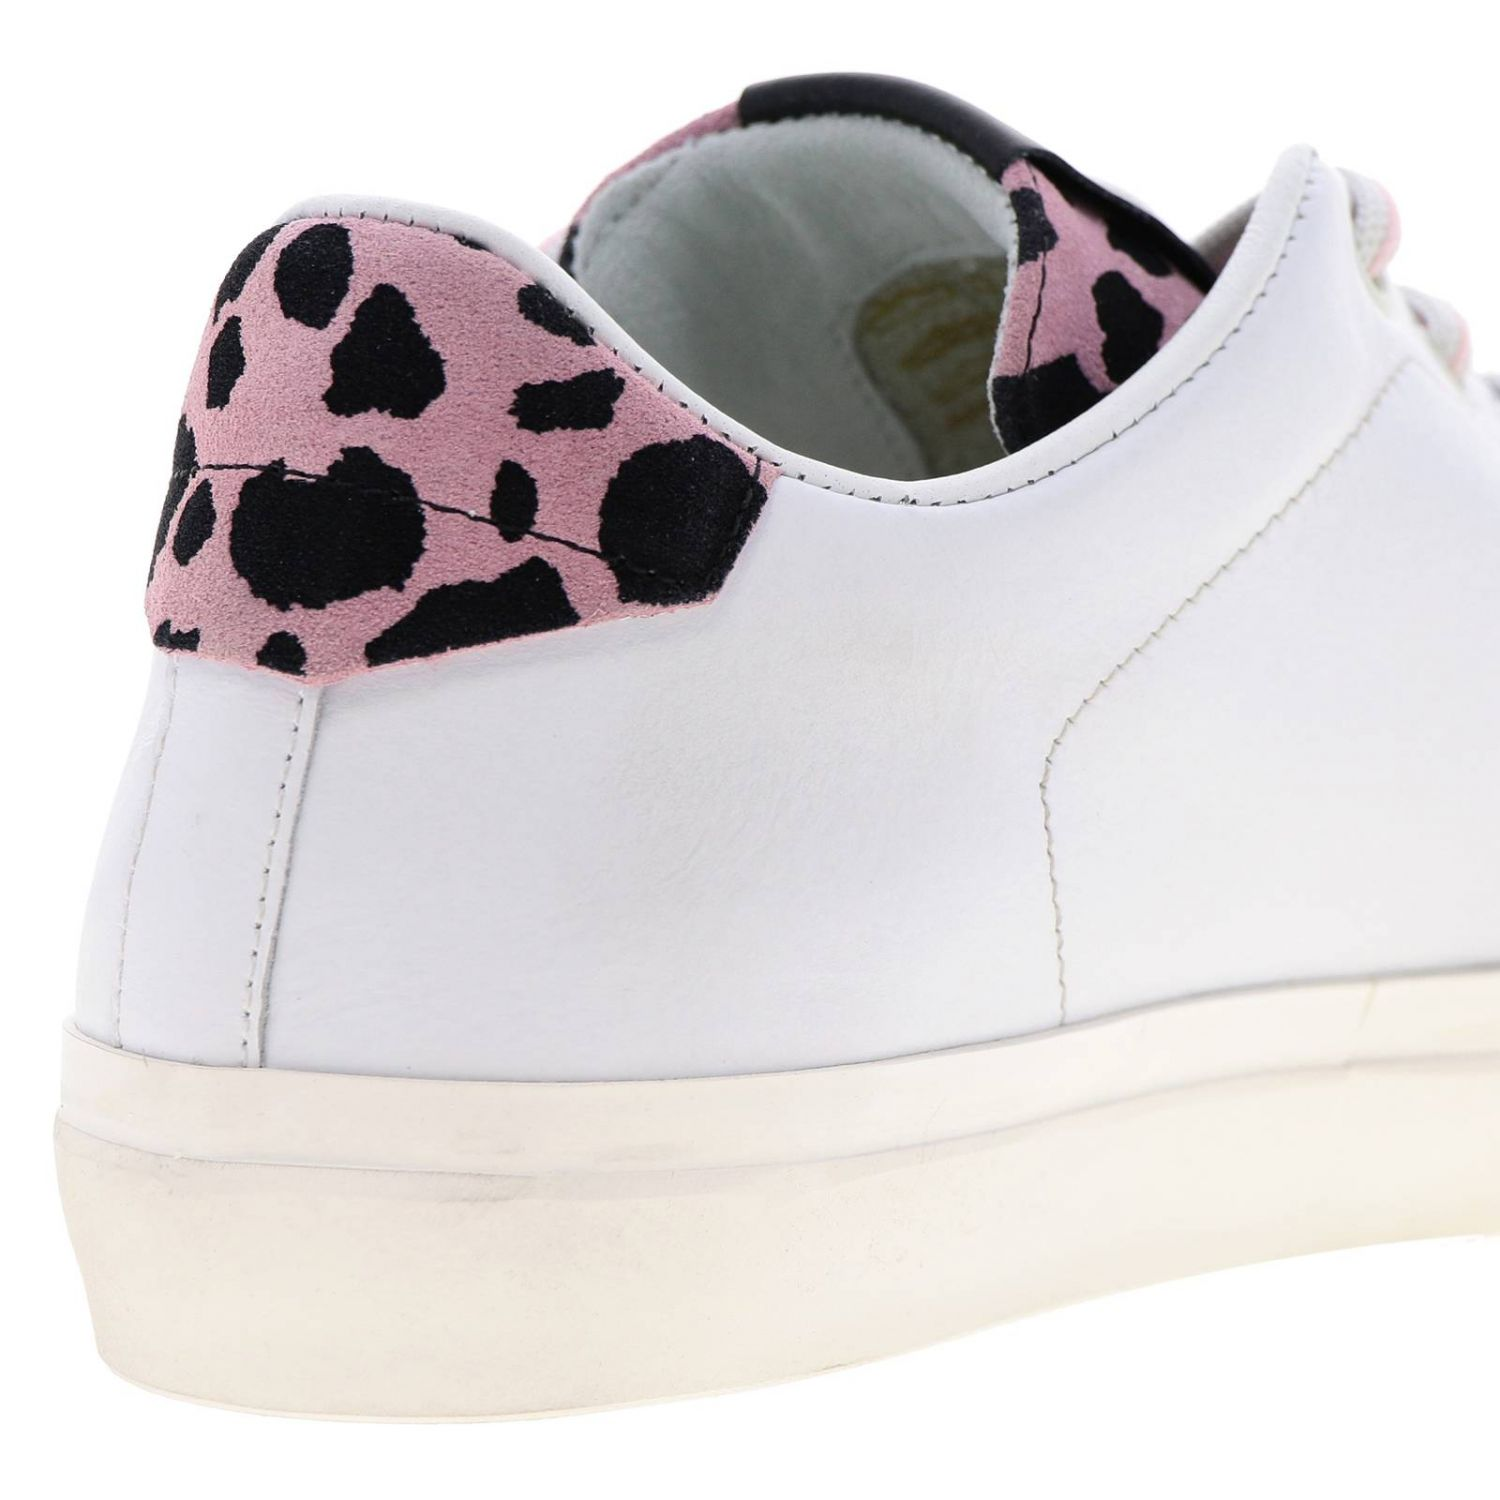 Shoes women Leather Crown pink 4